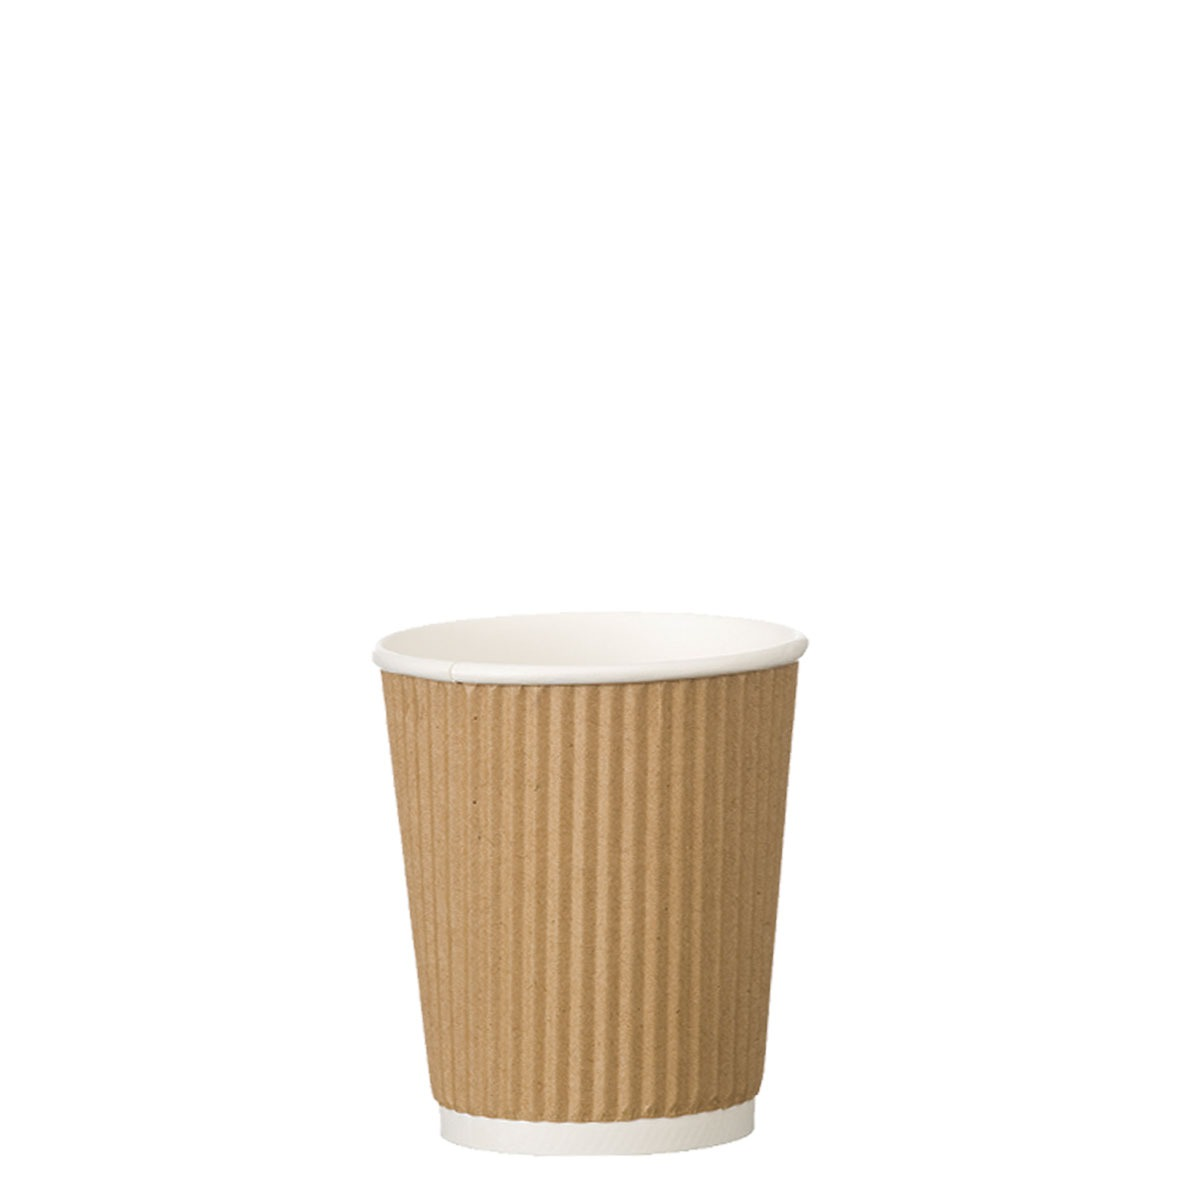 4oz Kraft Ripple Wall Hot Drink Disposable Coffee Cups & Lids